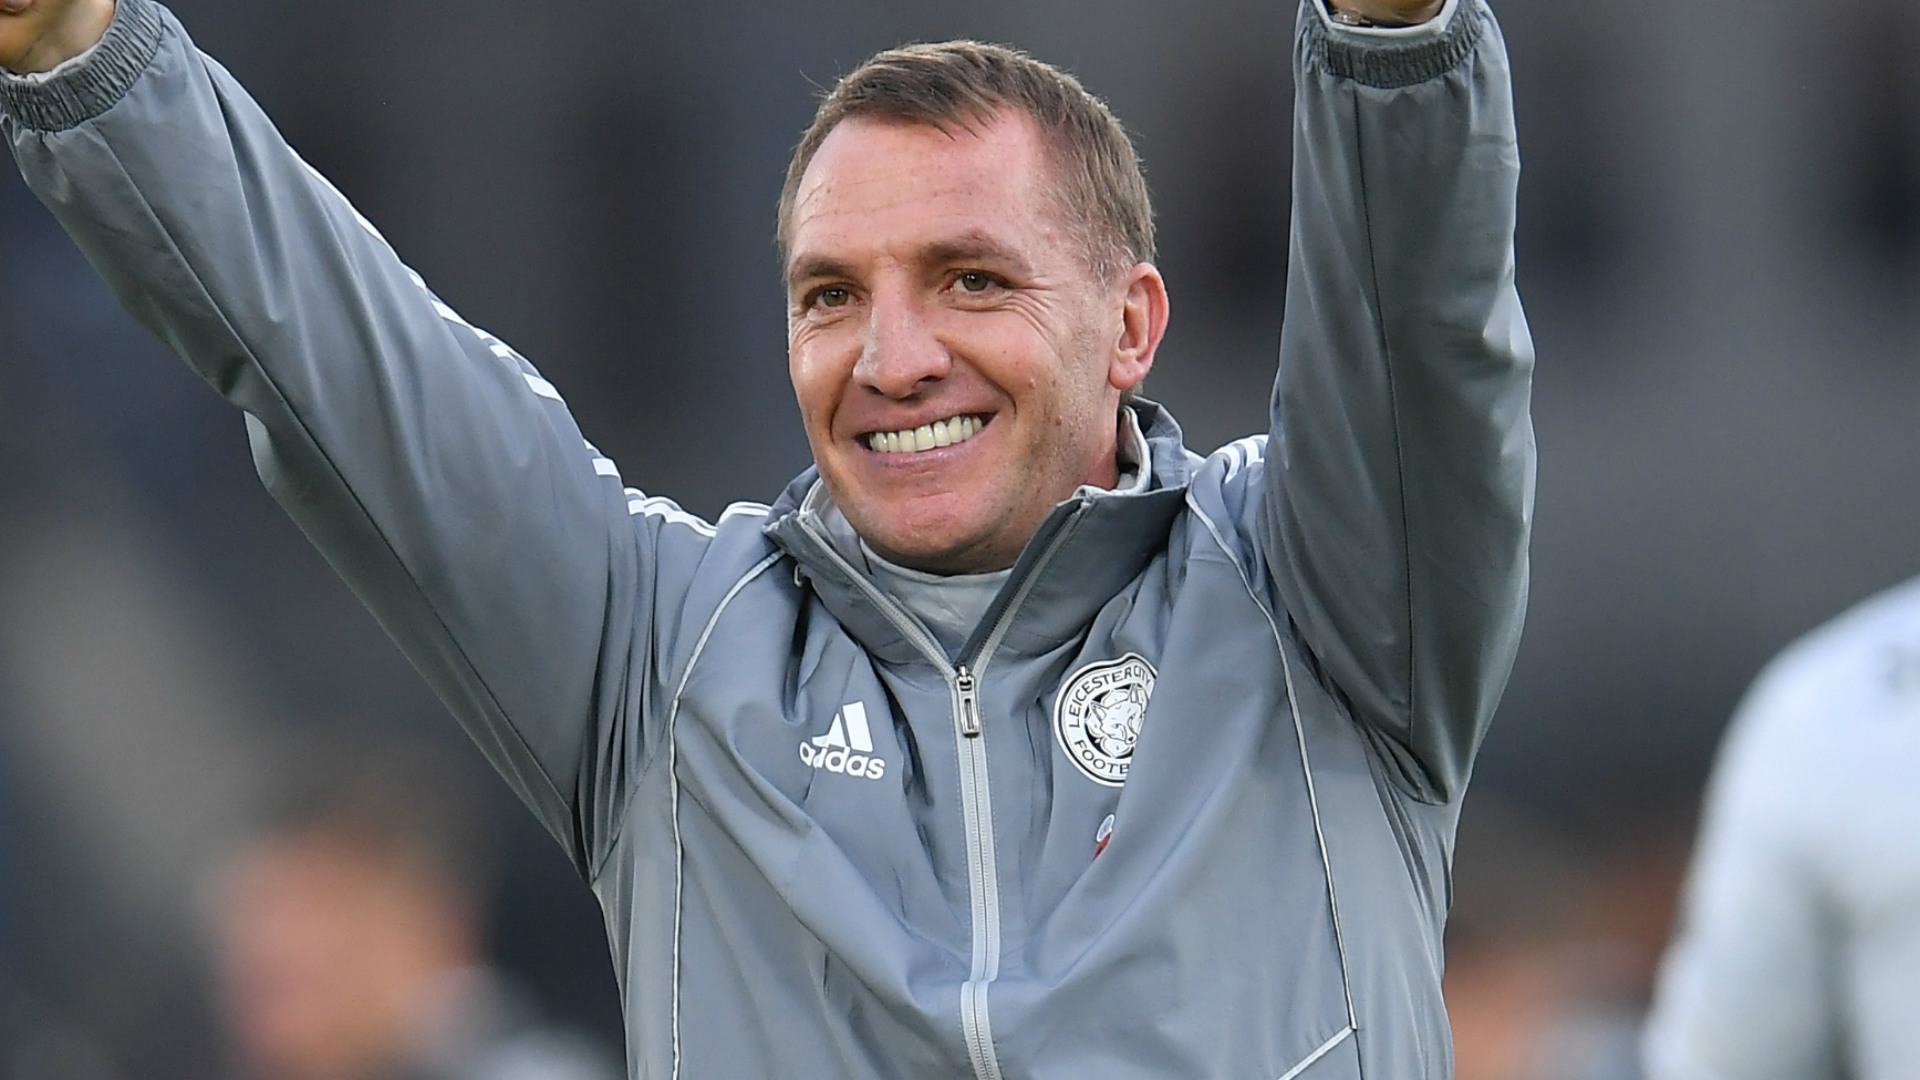 Arsenal-linked Rodgers signs Leicester extension until 2025